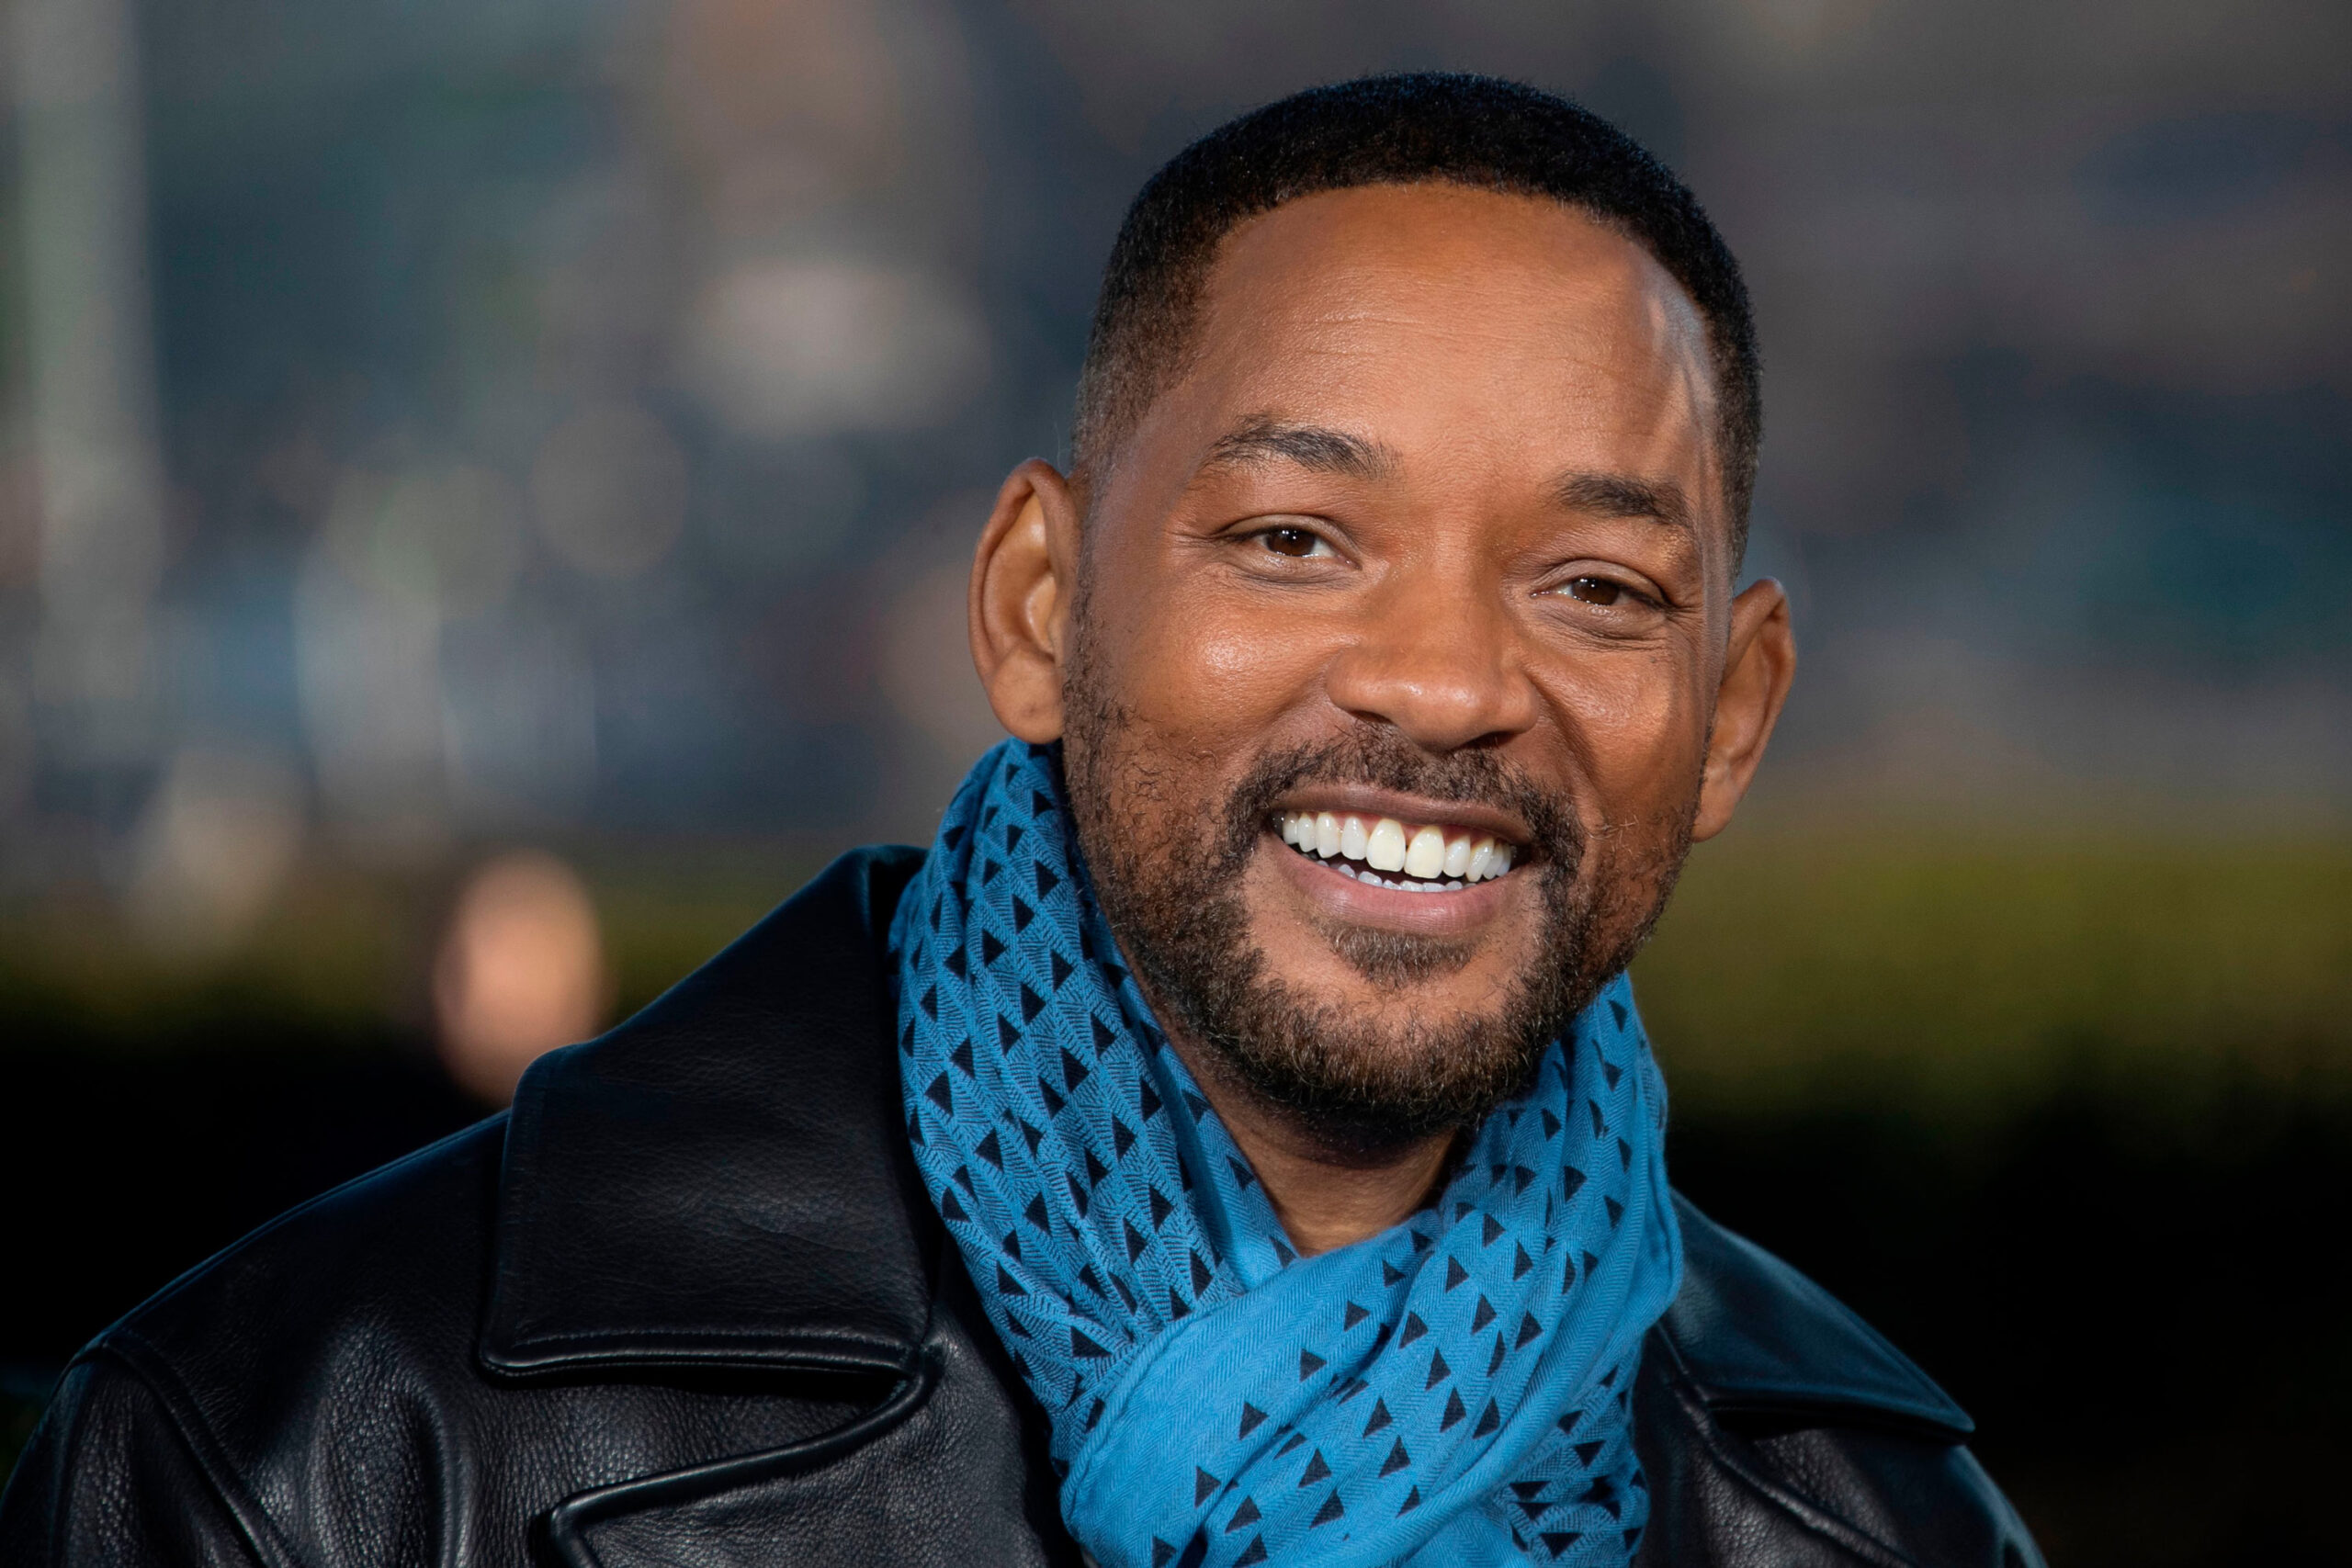 US actors Will Smith poses at the 'Bad Boys For Life' launching photocall in Paris, in front of the Eiffel Tower, on January 06, 2020. (Photo by Thomas SAMSON / AFP) (Photo by THOMAS SAMSON/AFP via Getty Images)